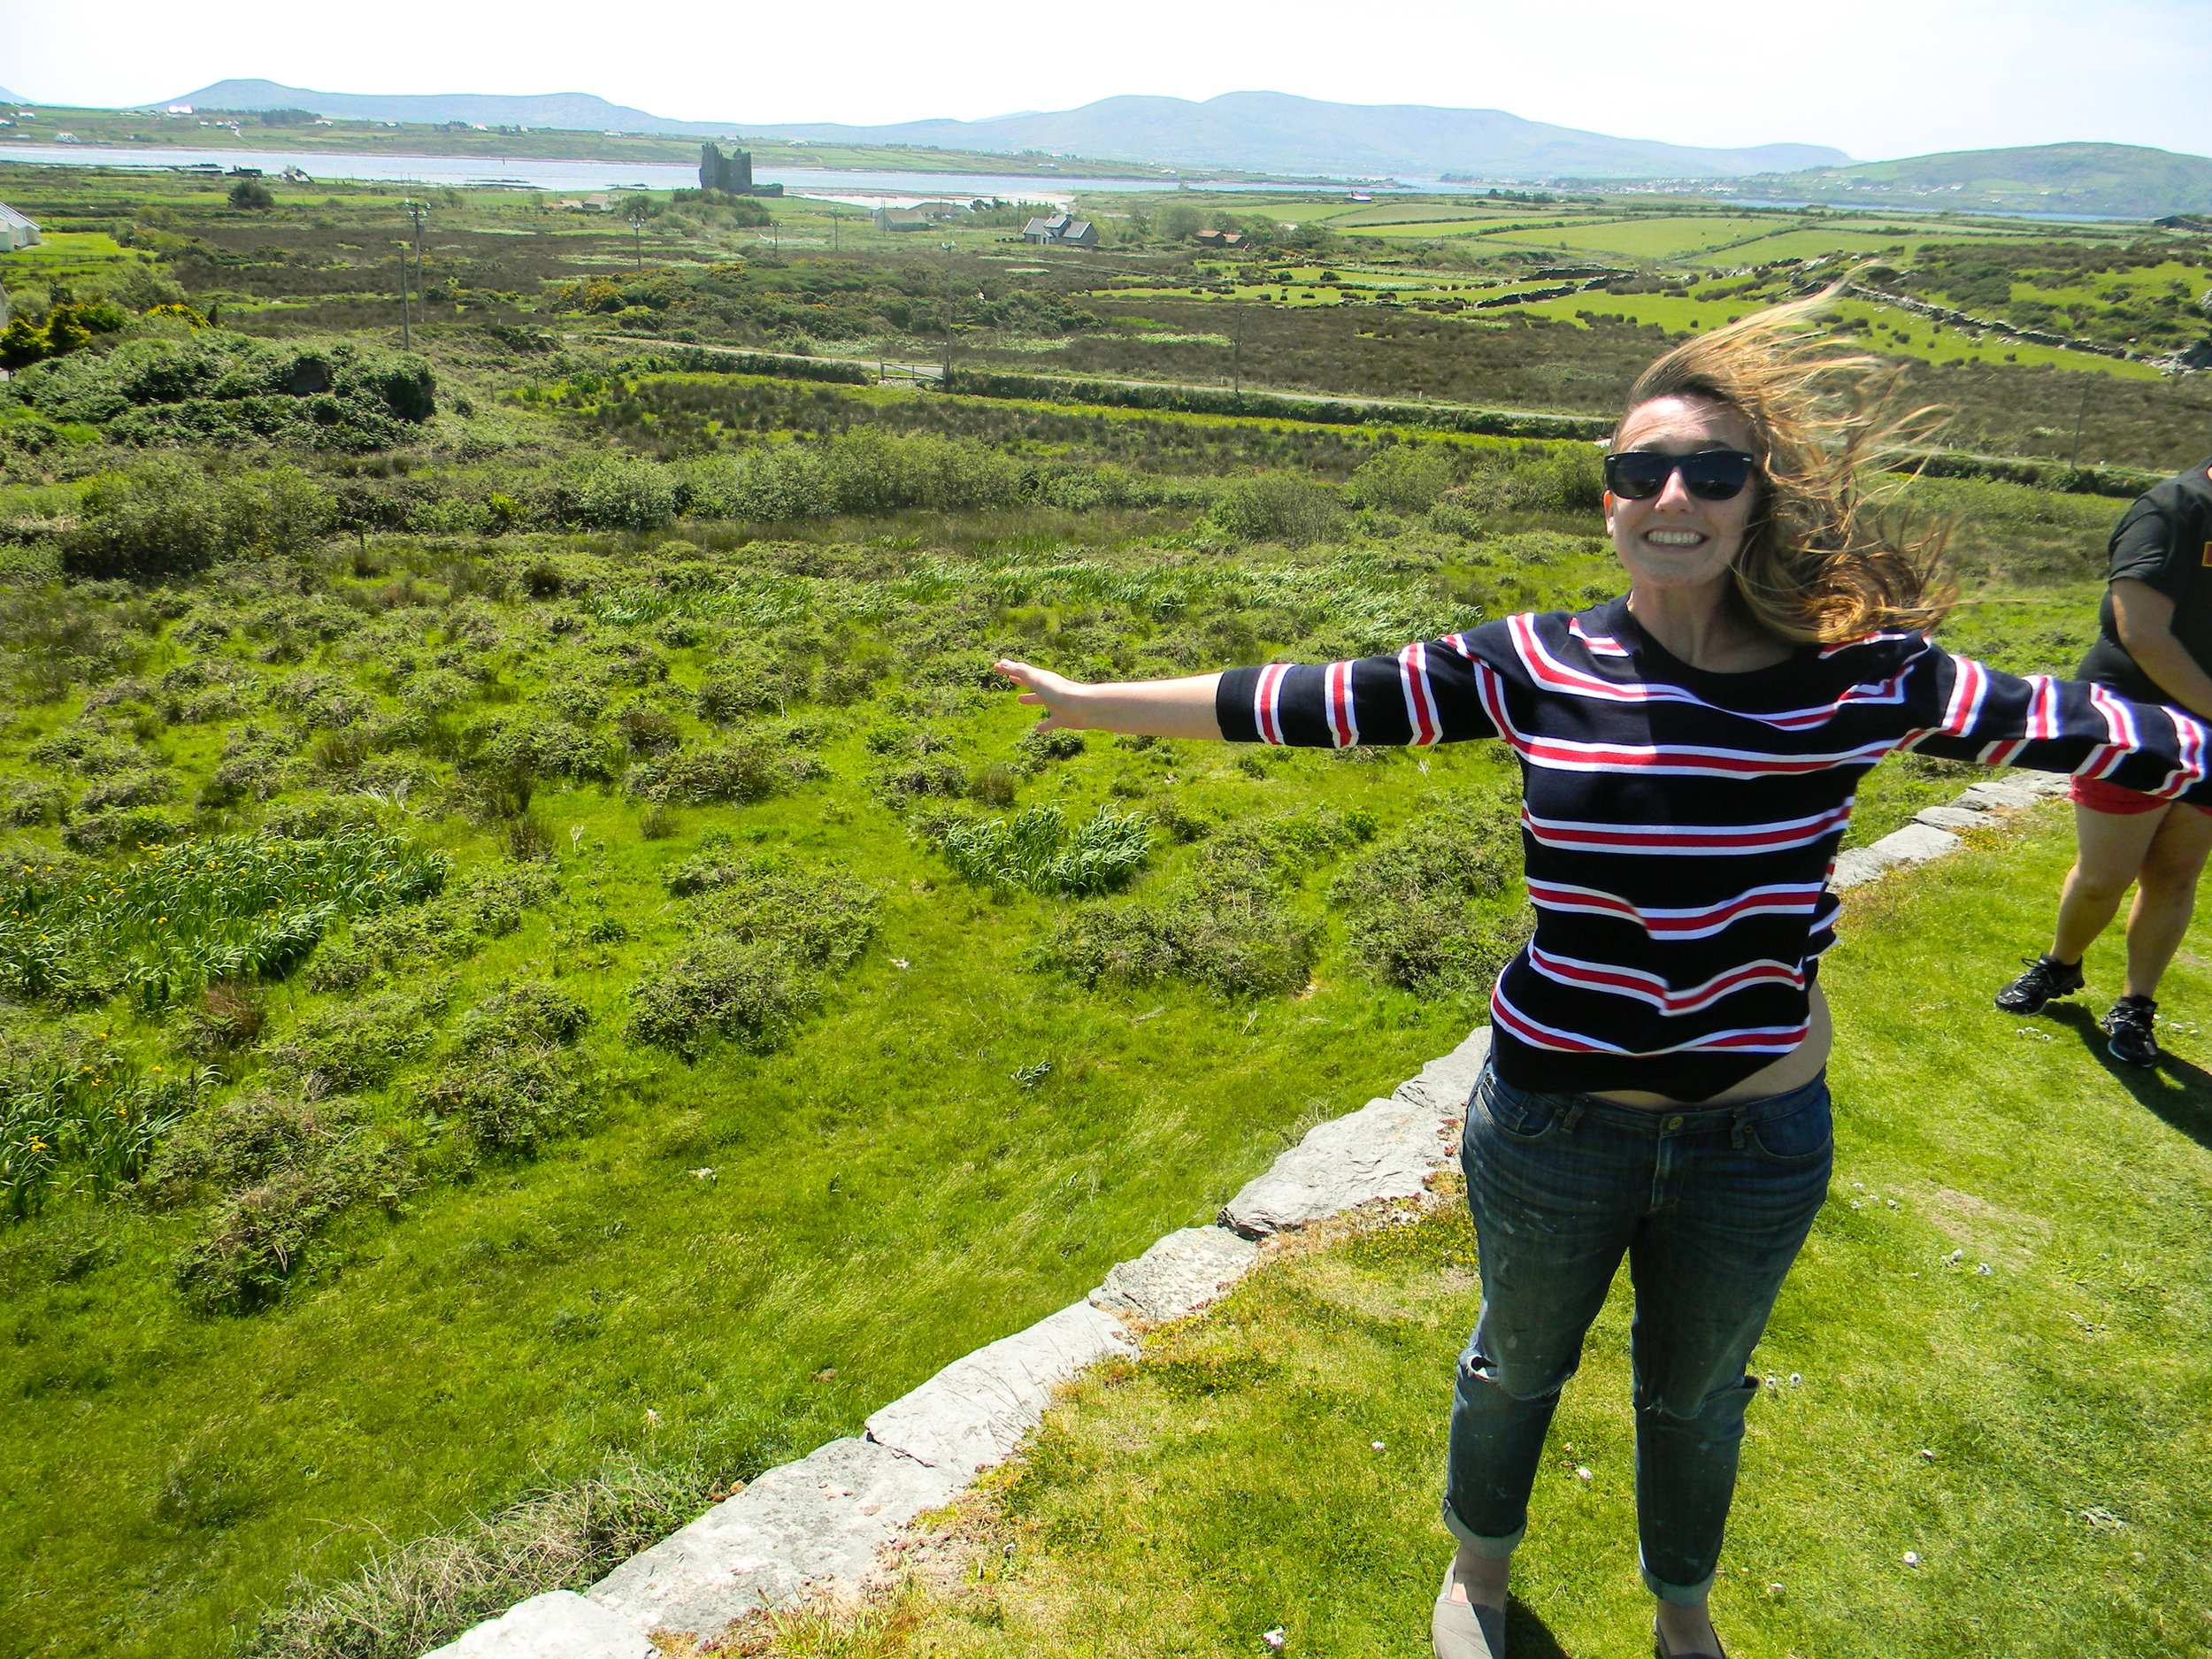 Candid Alexandra on a Fairy Fort in Ireland